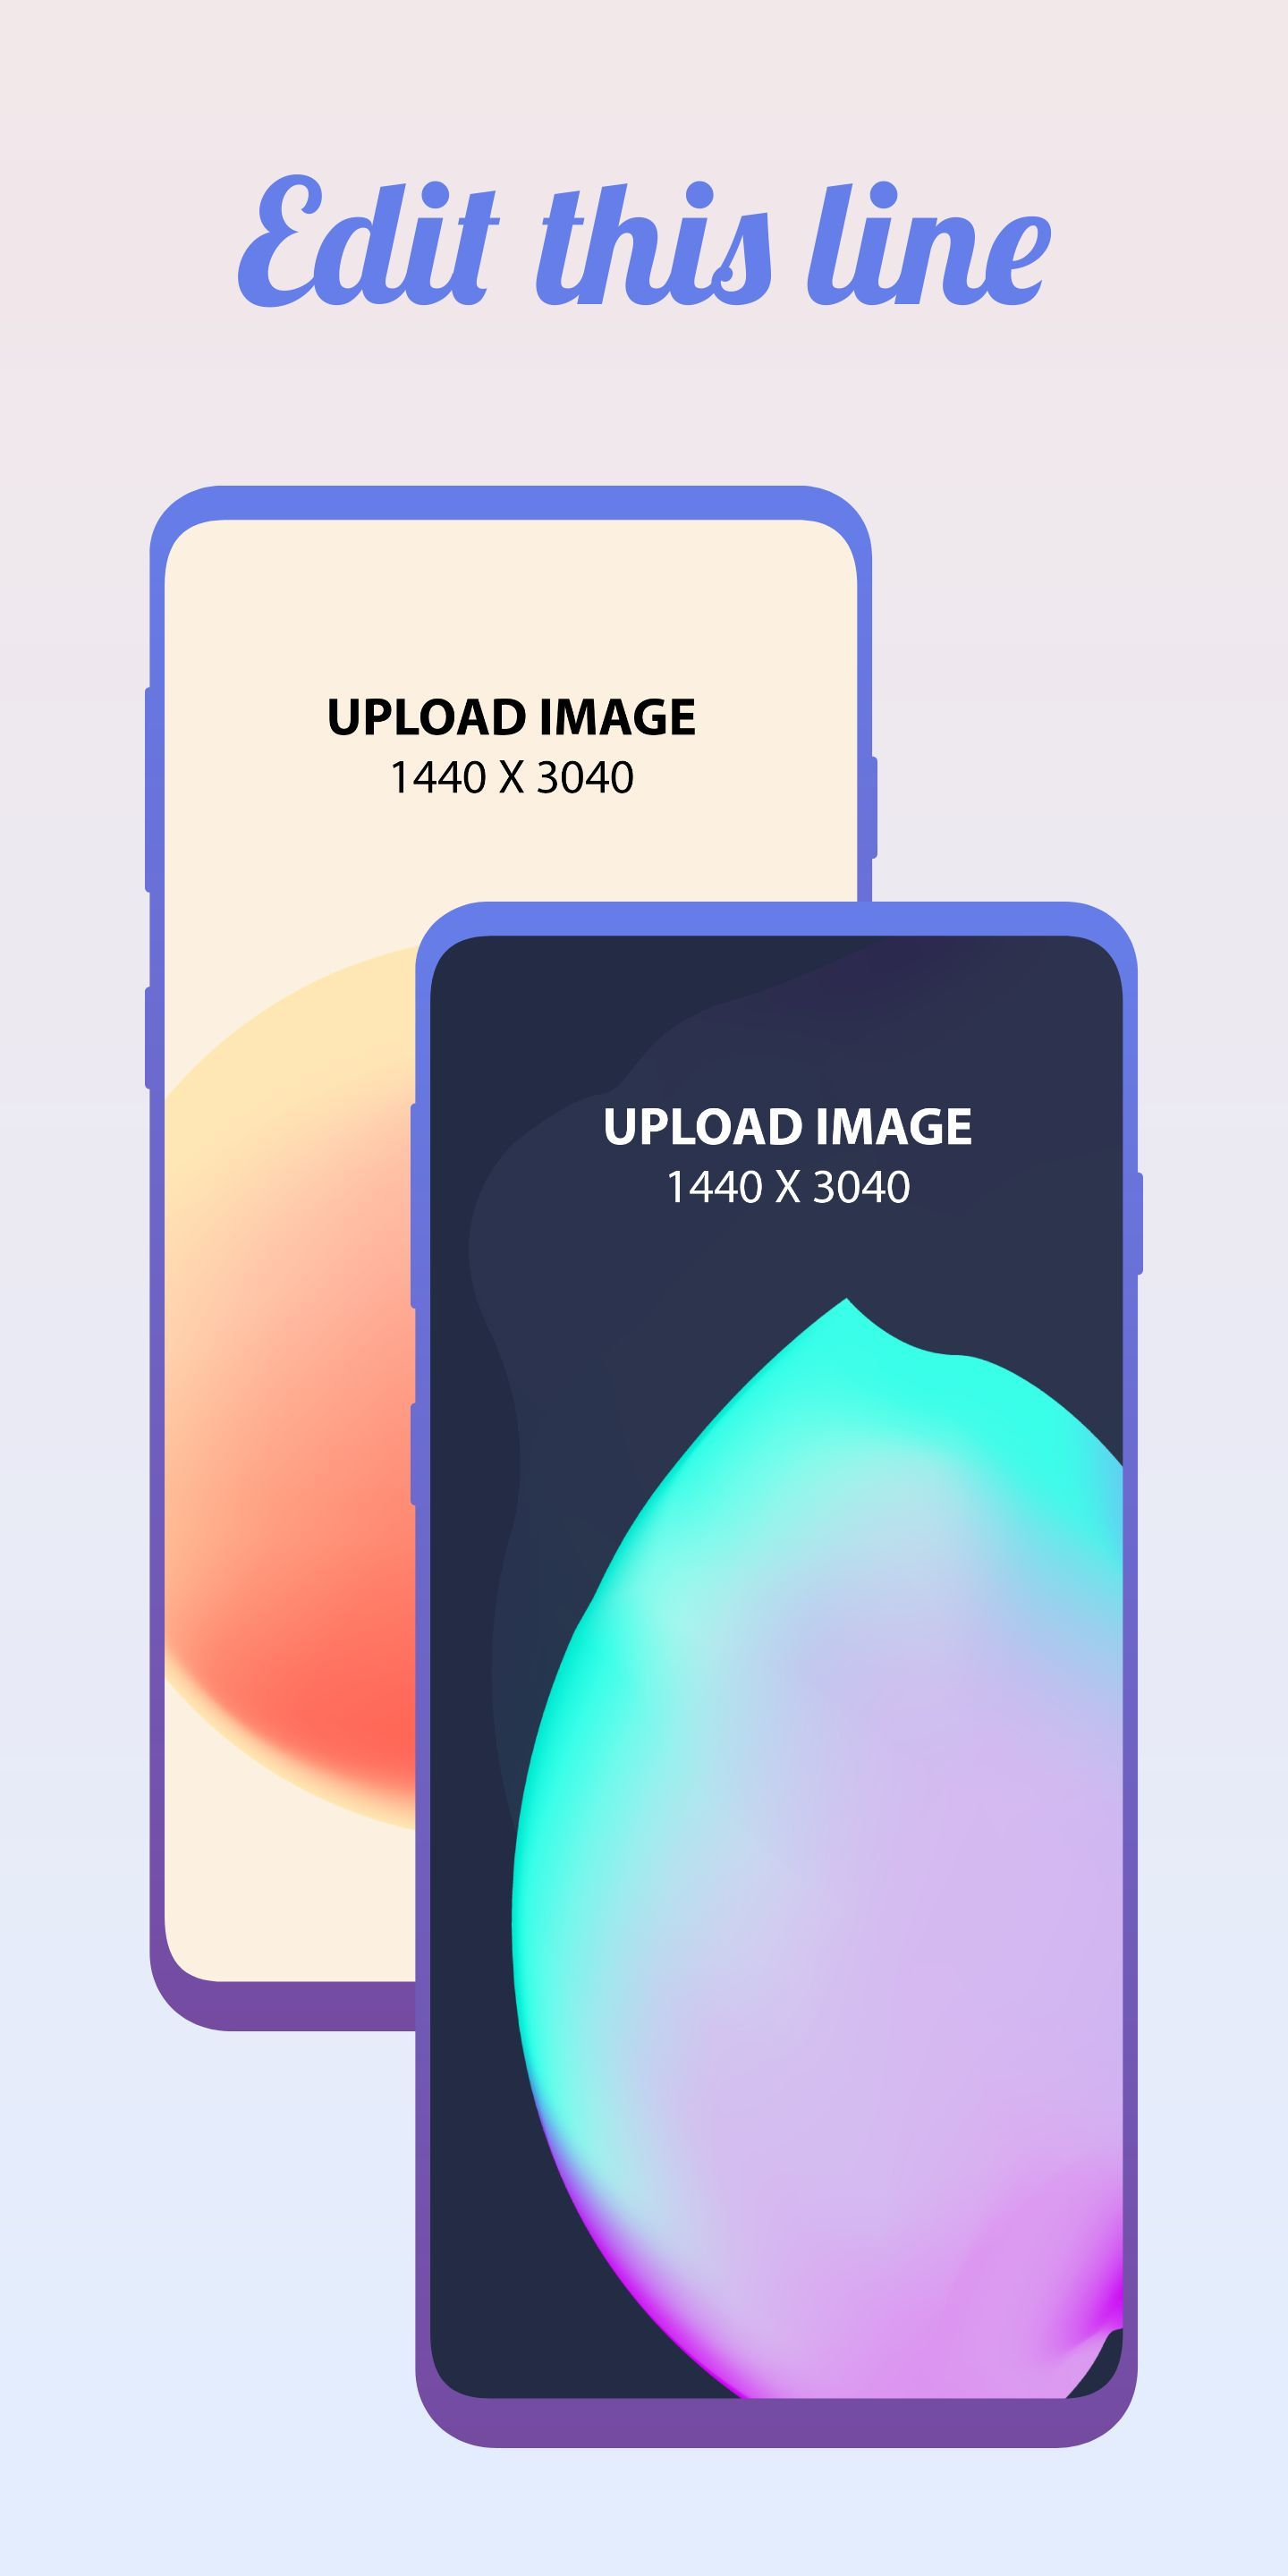 Samsung S10 Screenshot 7 template. Quickly edit text, colors, images, and more for free.